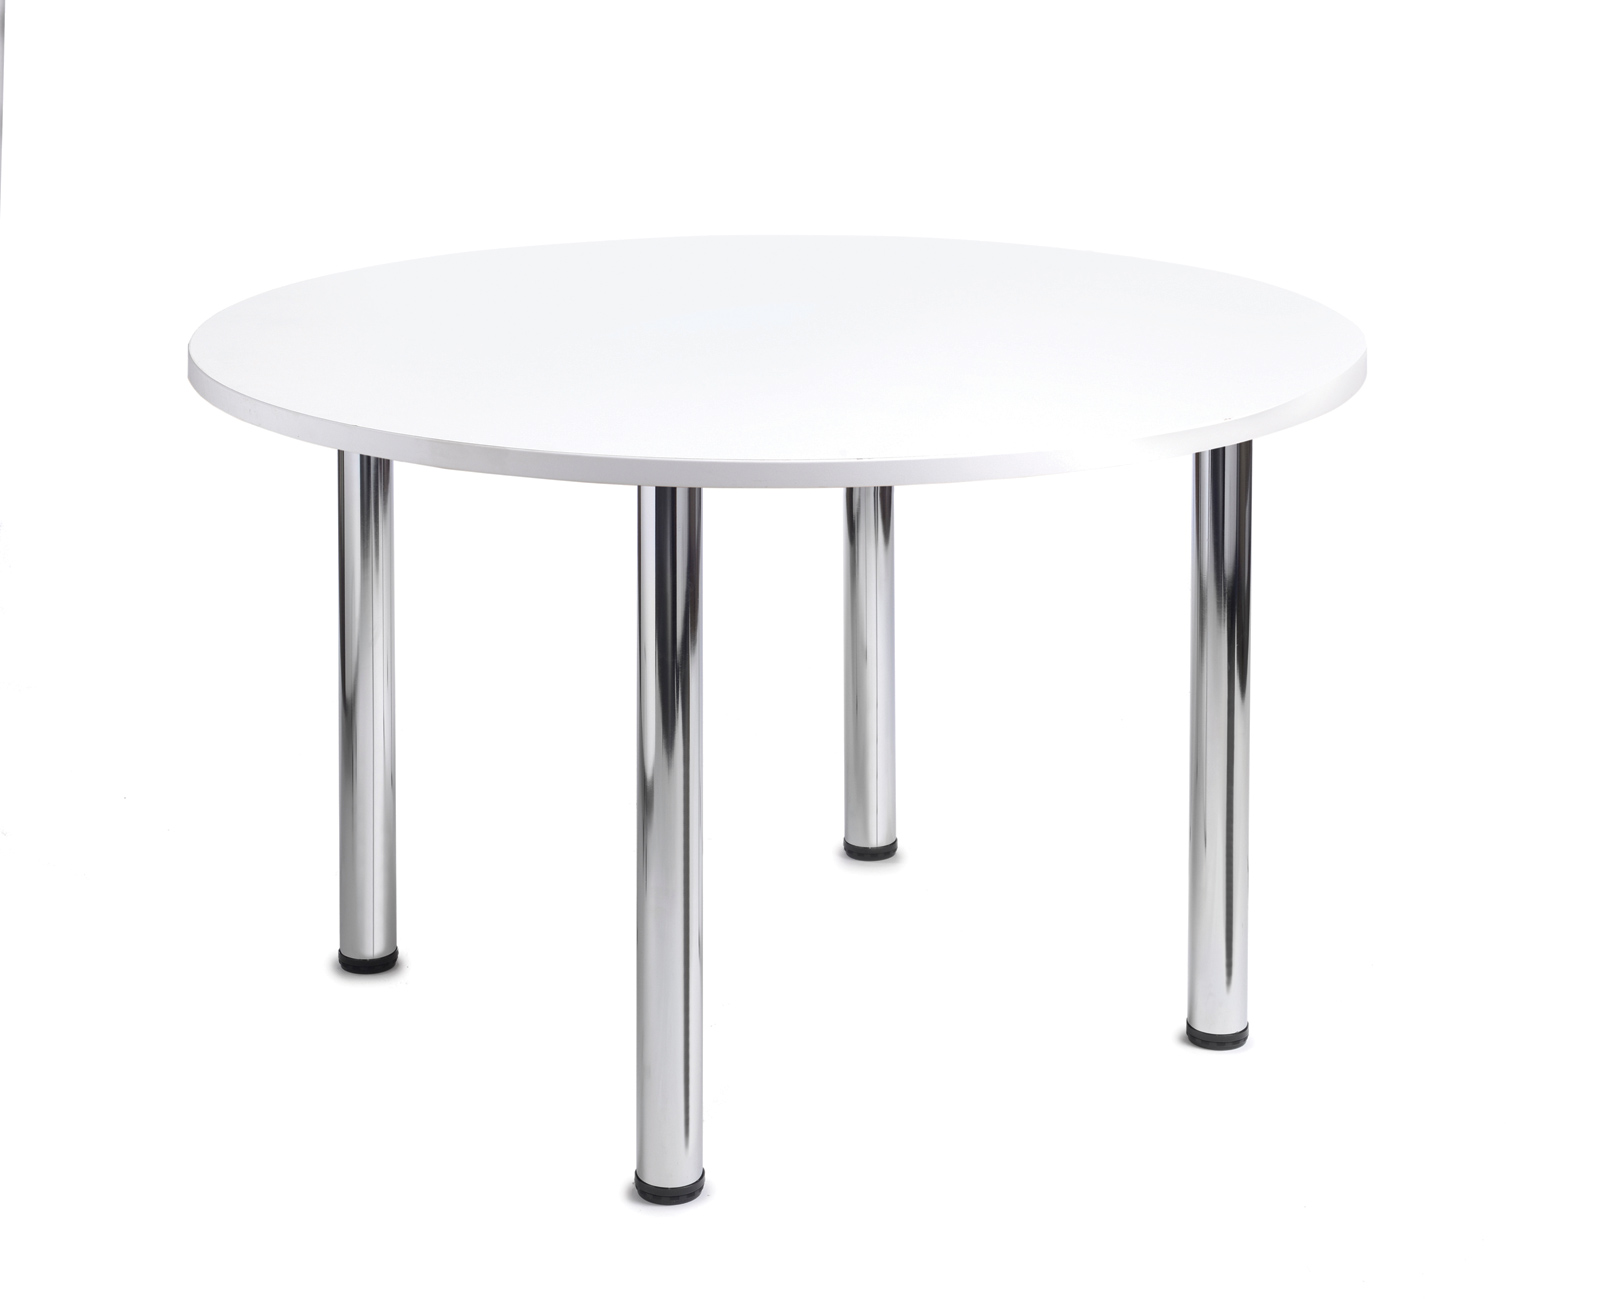 1200mm diameter Top + Chrome radial Legs - White